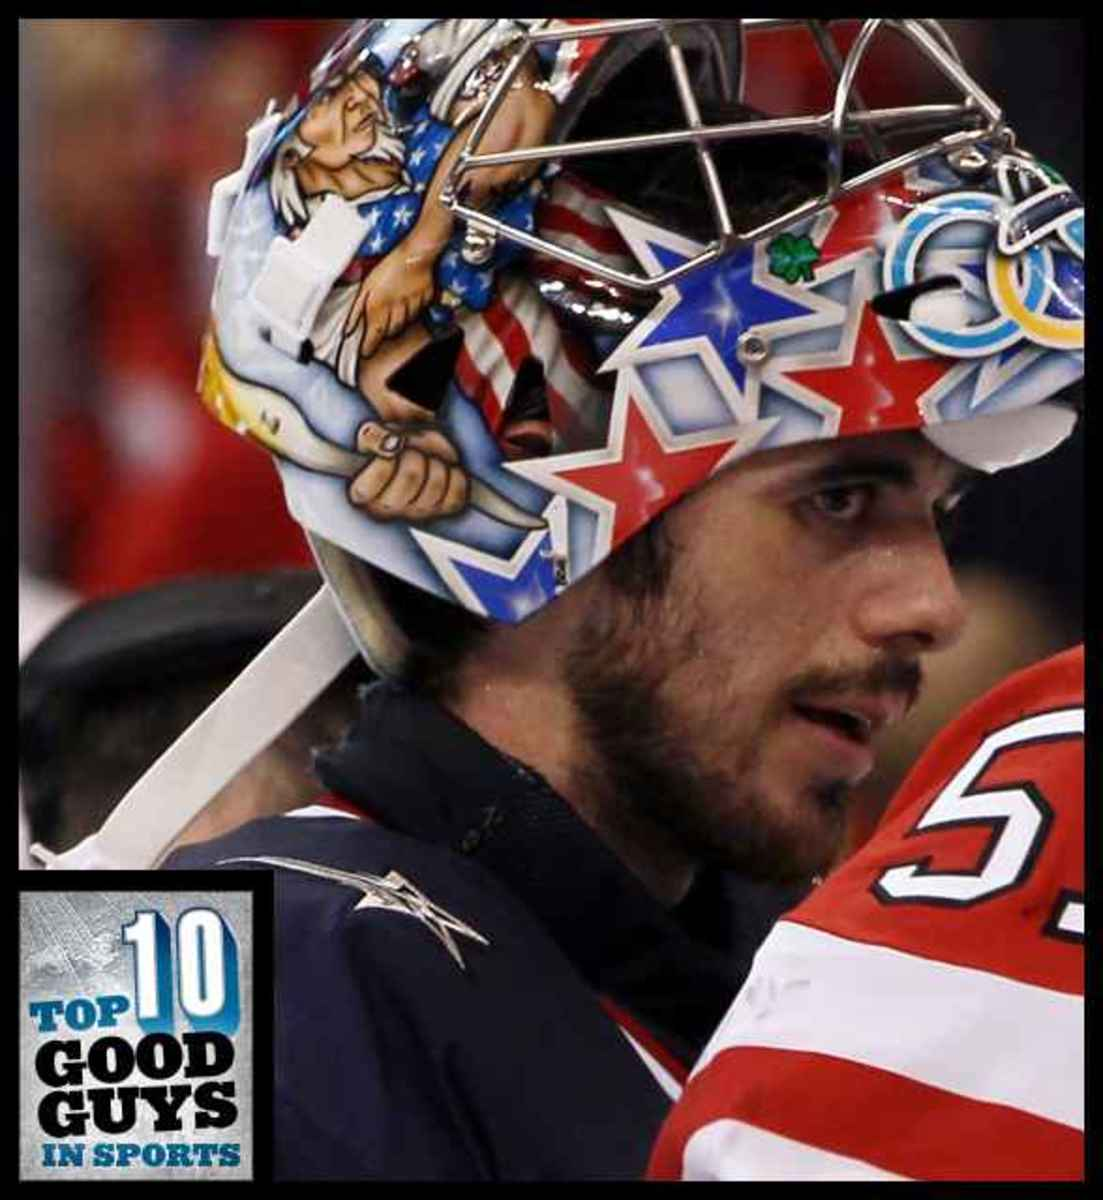 Big props to Ryan Miller:  one of sports top ten good people.  Photo courtesy of www.Deadspin.com